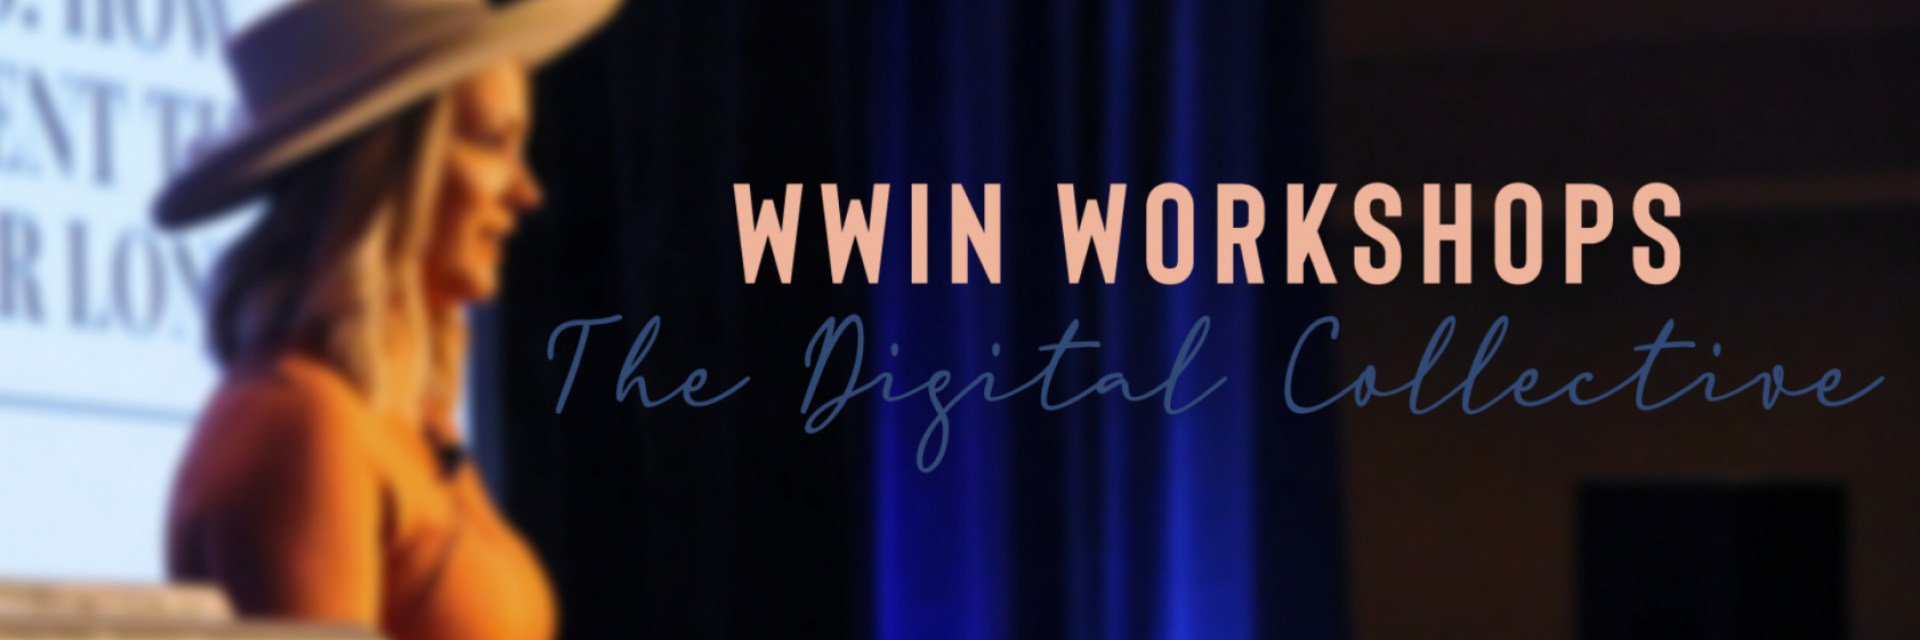 WWIN Digital Collective Resource Center